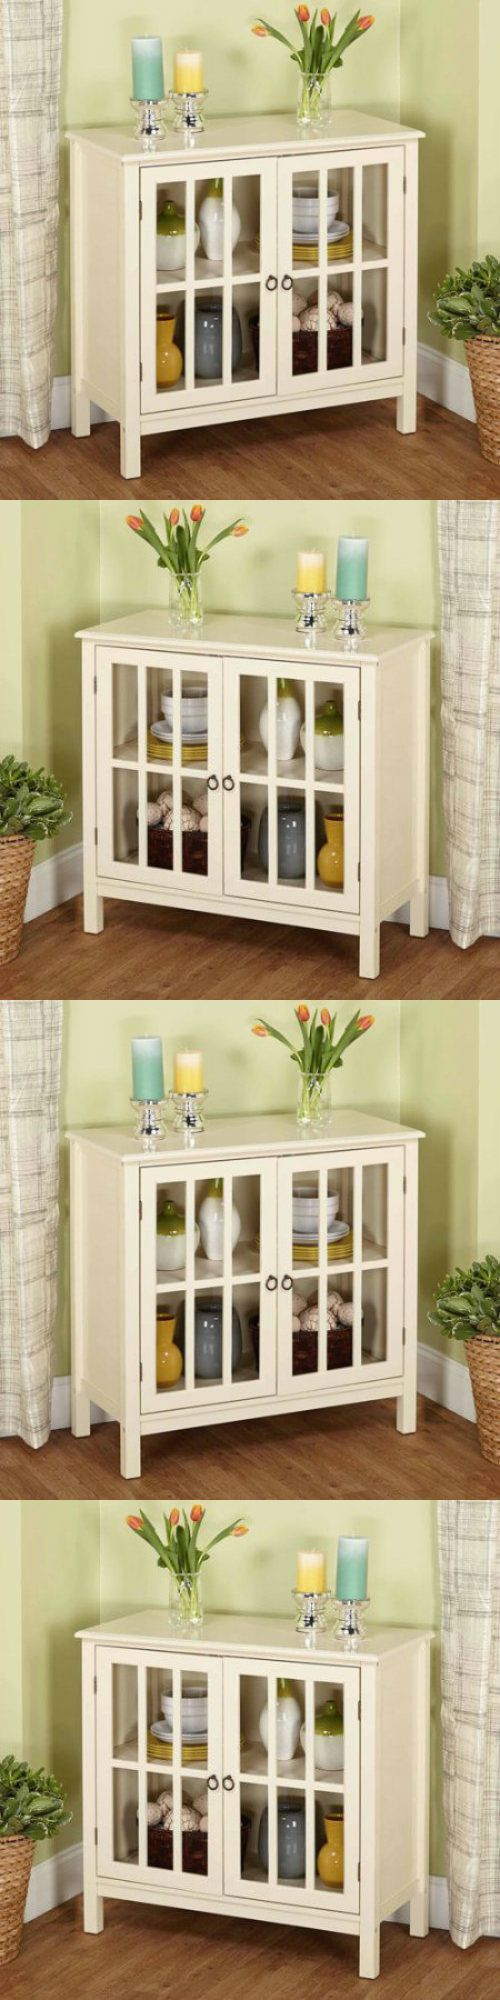 Sideboards and Buffets 183322: Antique White Buffet Cabinet Sideboard China Storage Display Glass Doors Table -> BUY IT NOW ONLY: $139.99 on eBay!